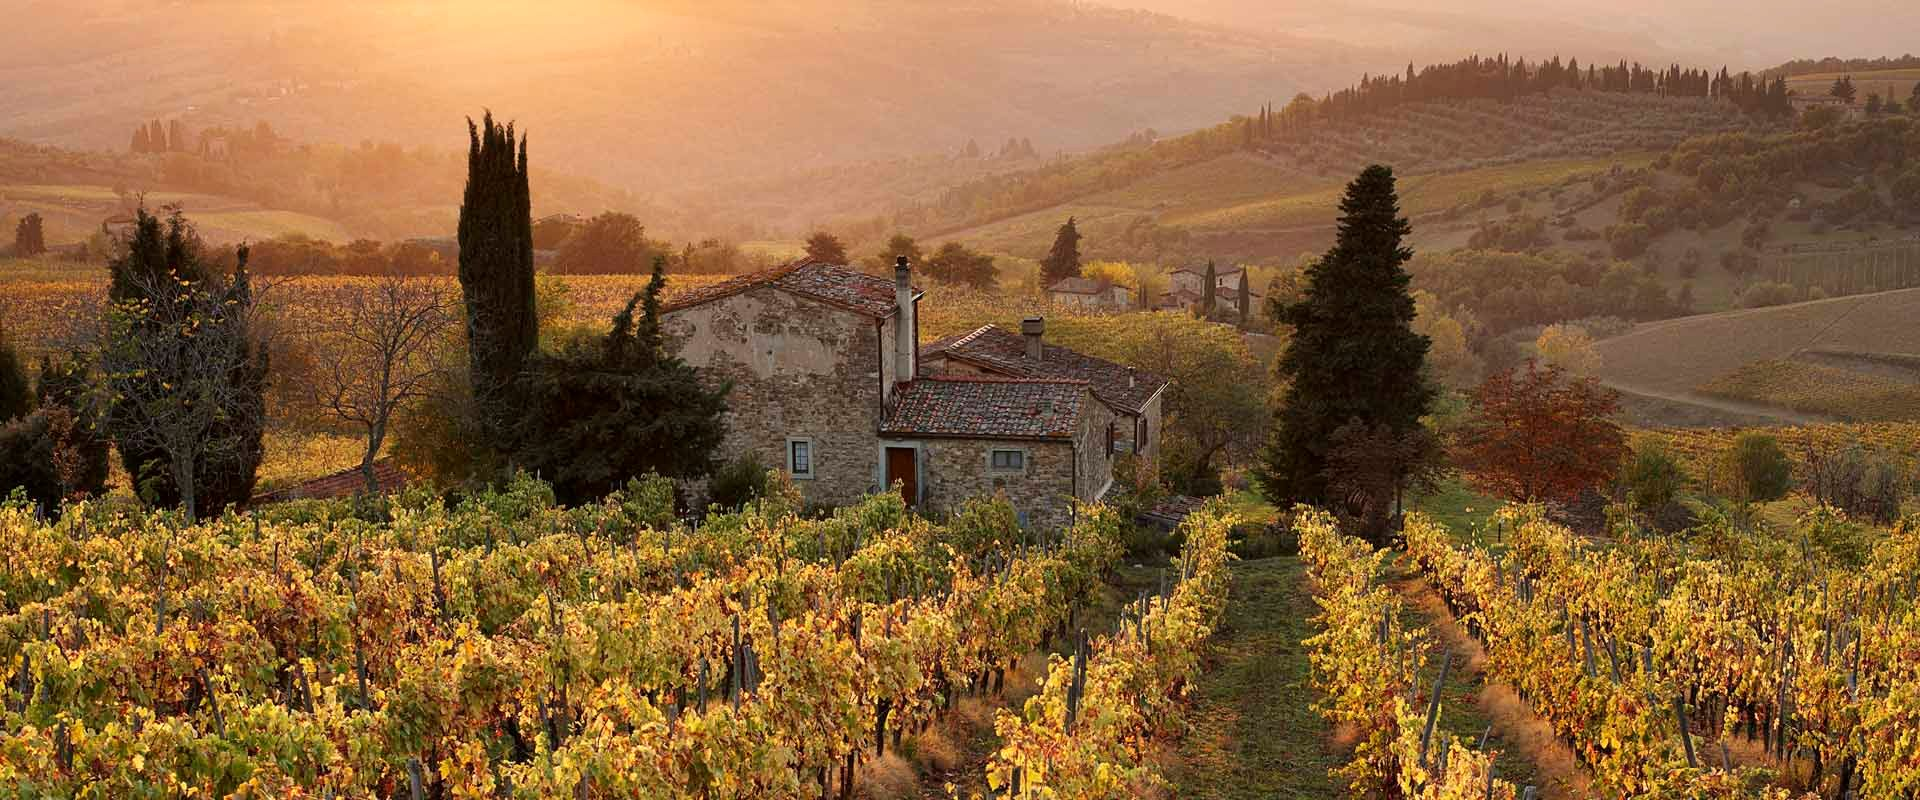 Farmhouse in vineyard at sunset, Panzano, Chianti, Tuscany, Italy